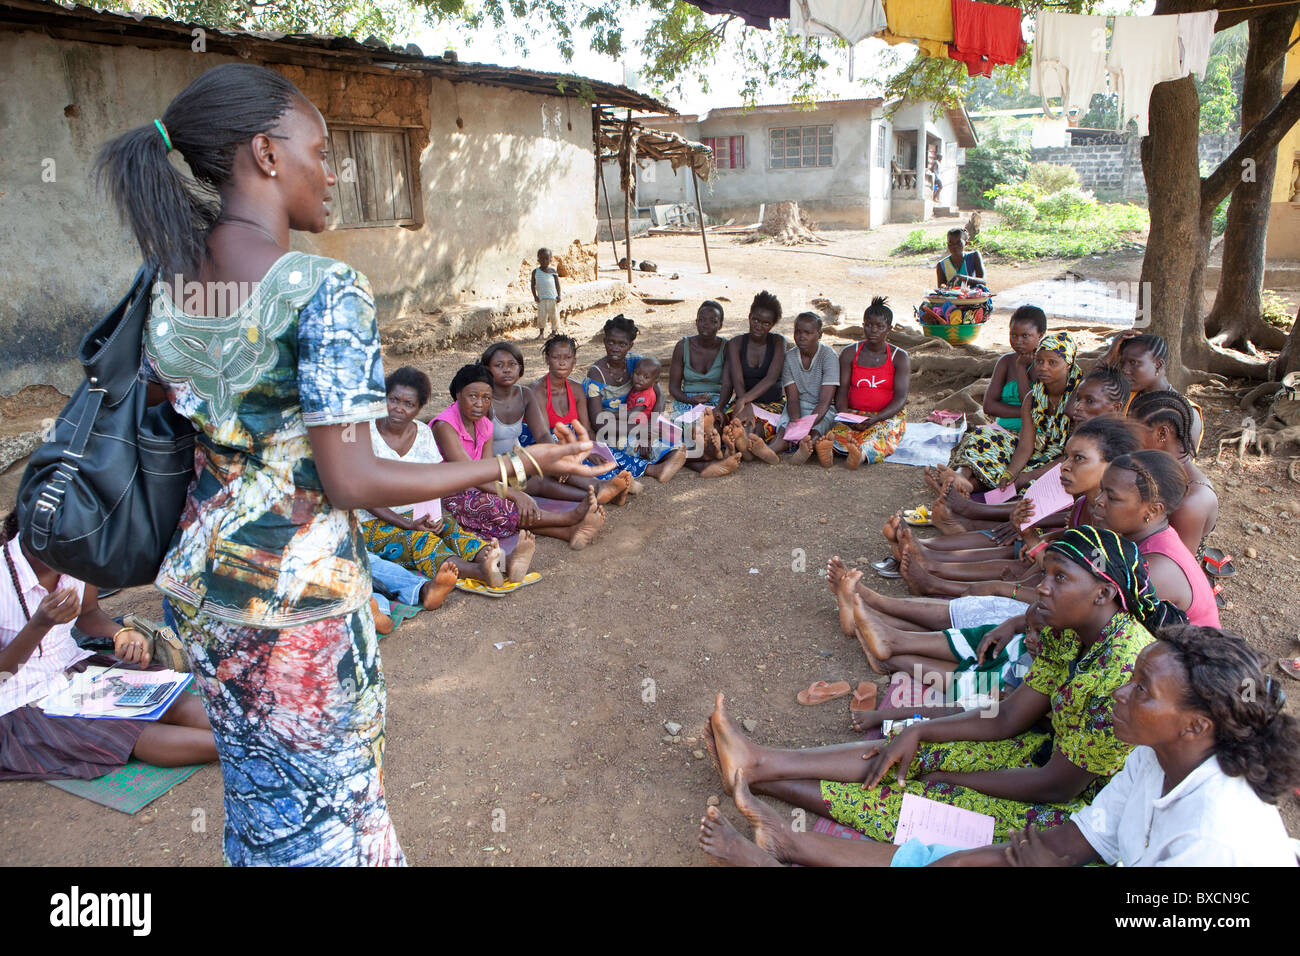 Women attend a community meeting in Freetown, Sierra Leone, West Africa. - Stock Image